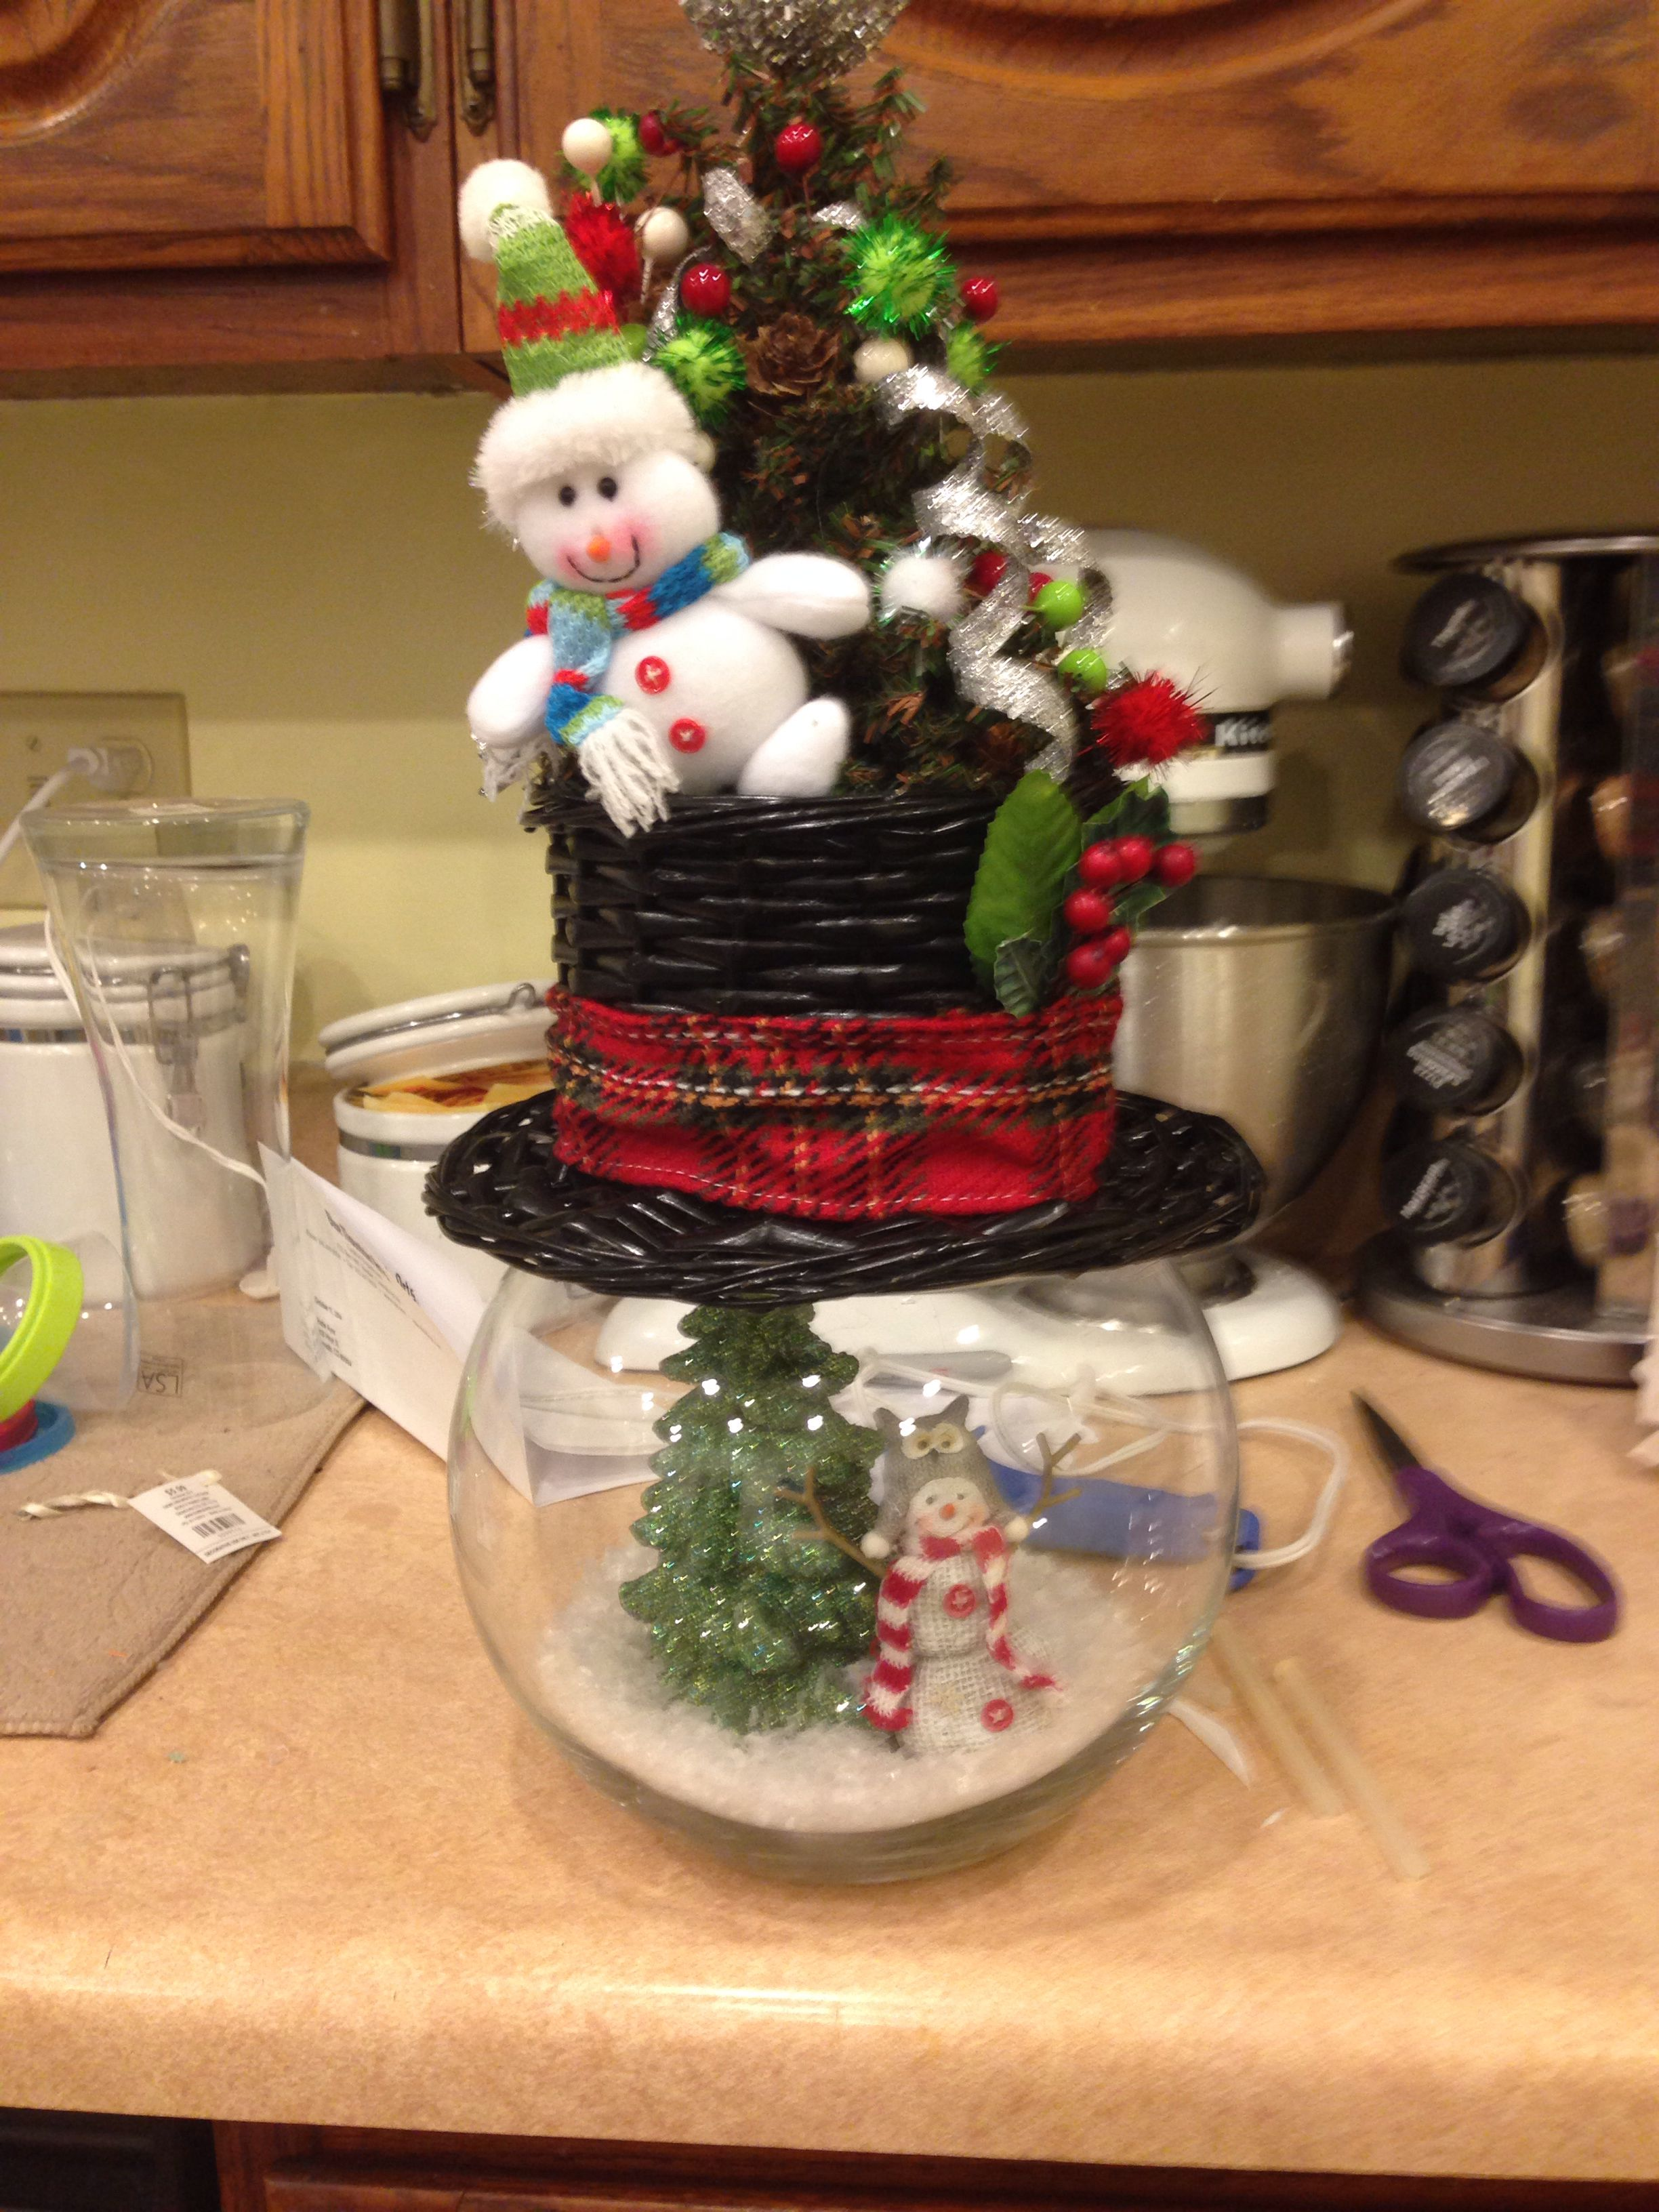 Snowman hat centerpiece, I need to go back and get another